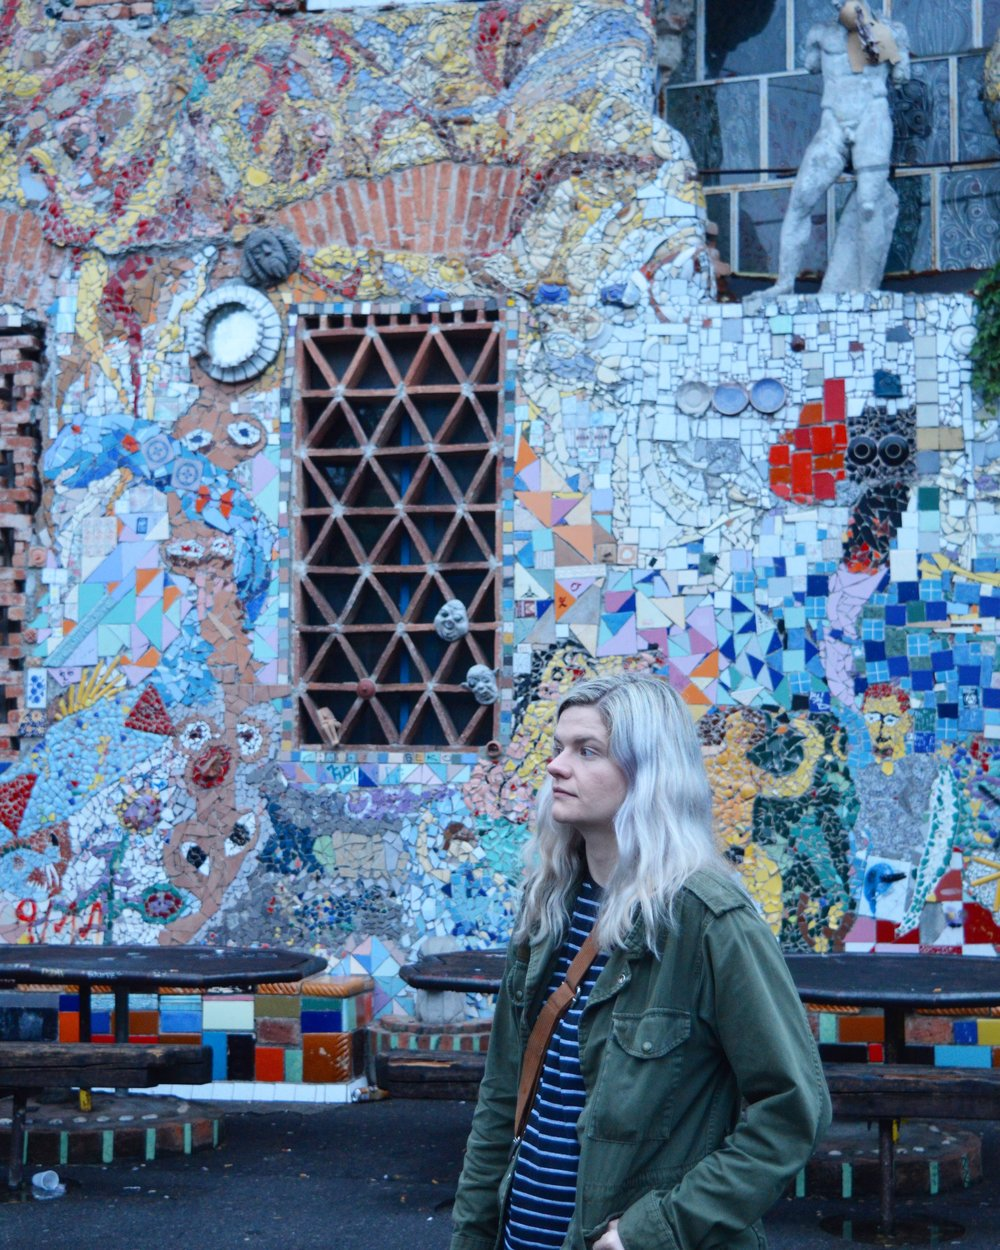 Metelkova - the internationally-renowned alternative culture community in the centre of Slovenia's capital